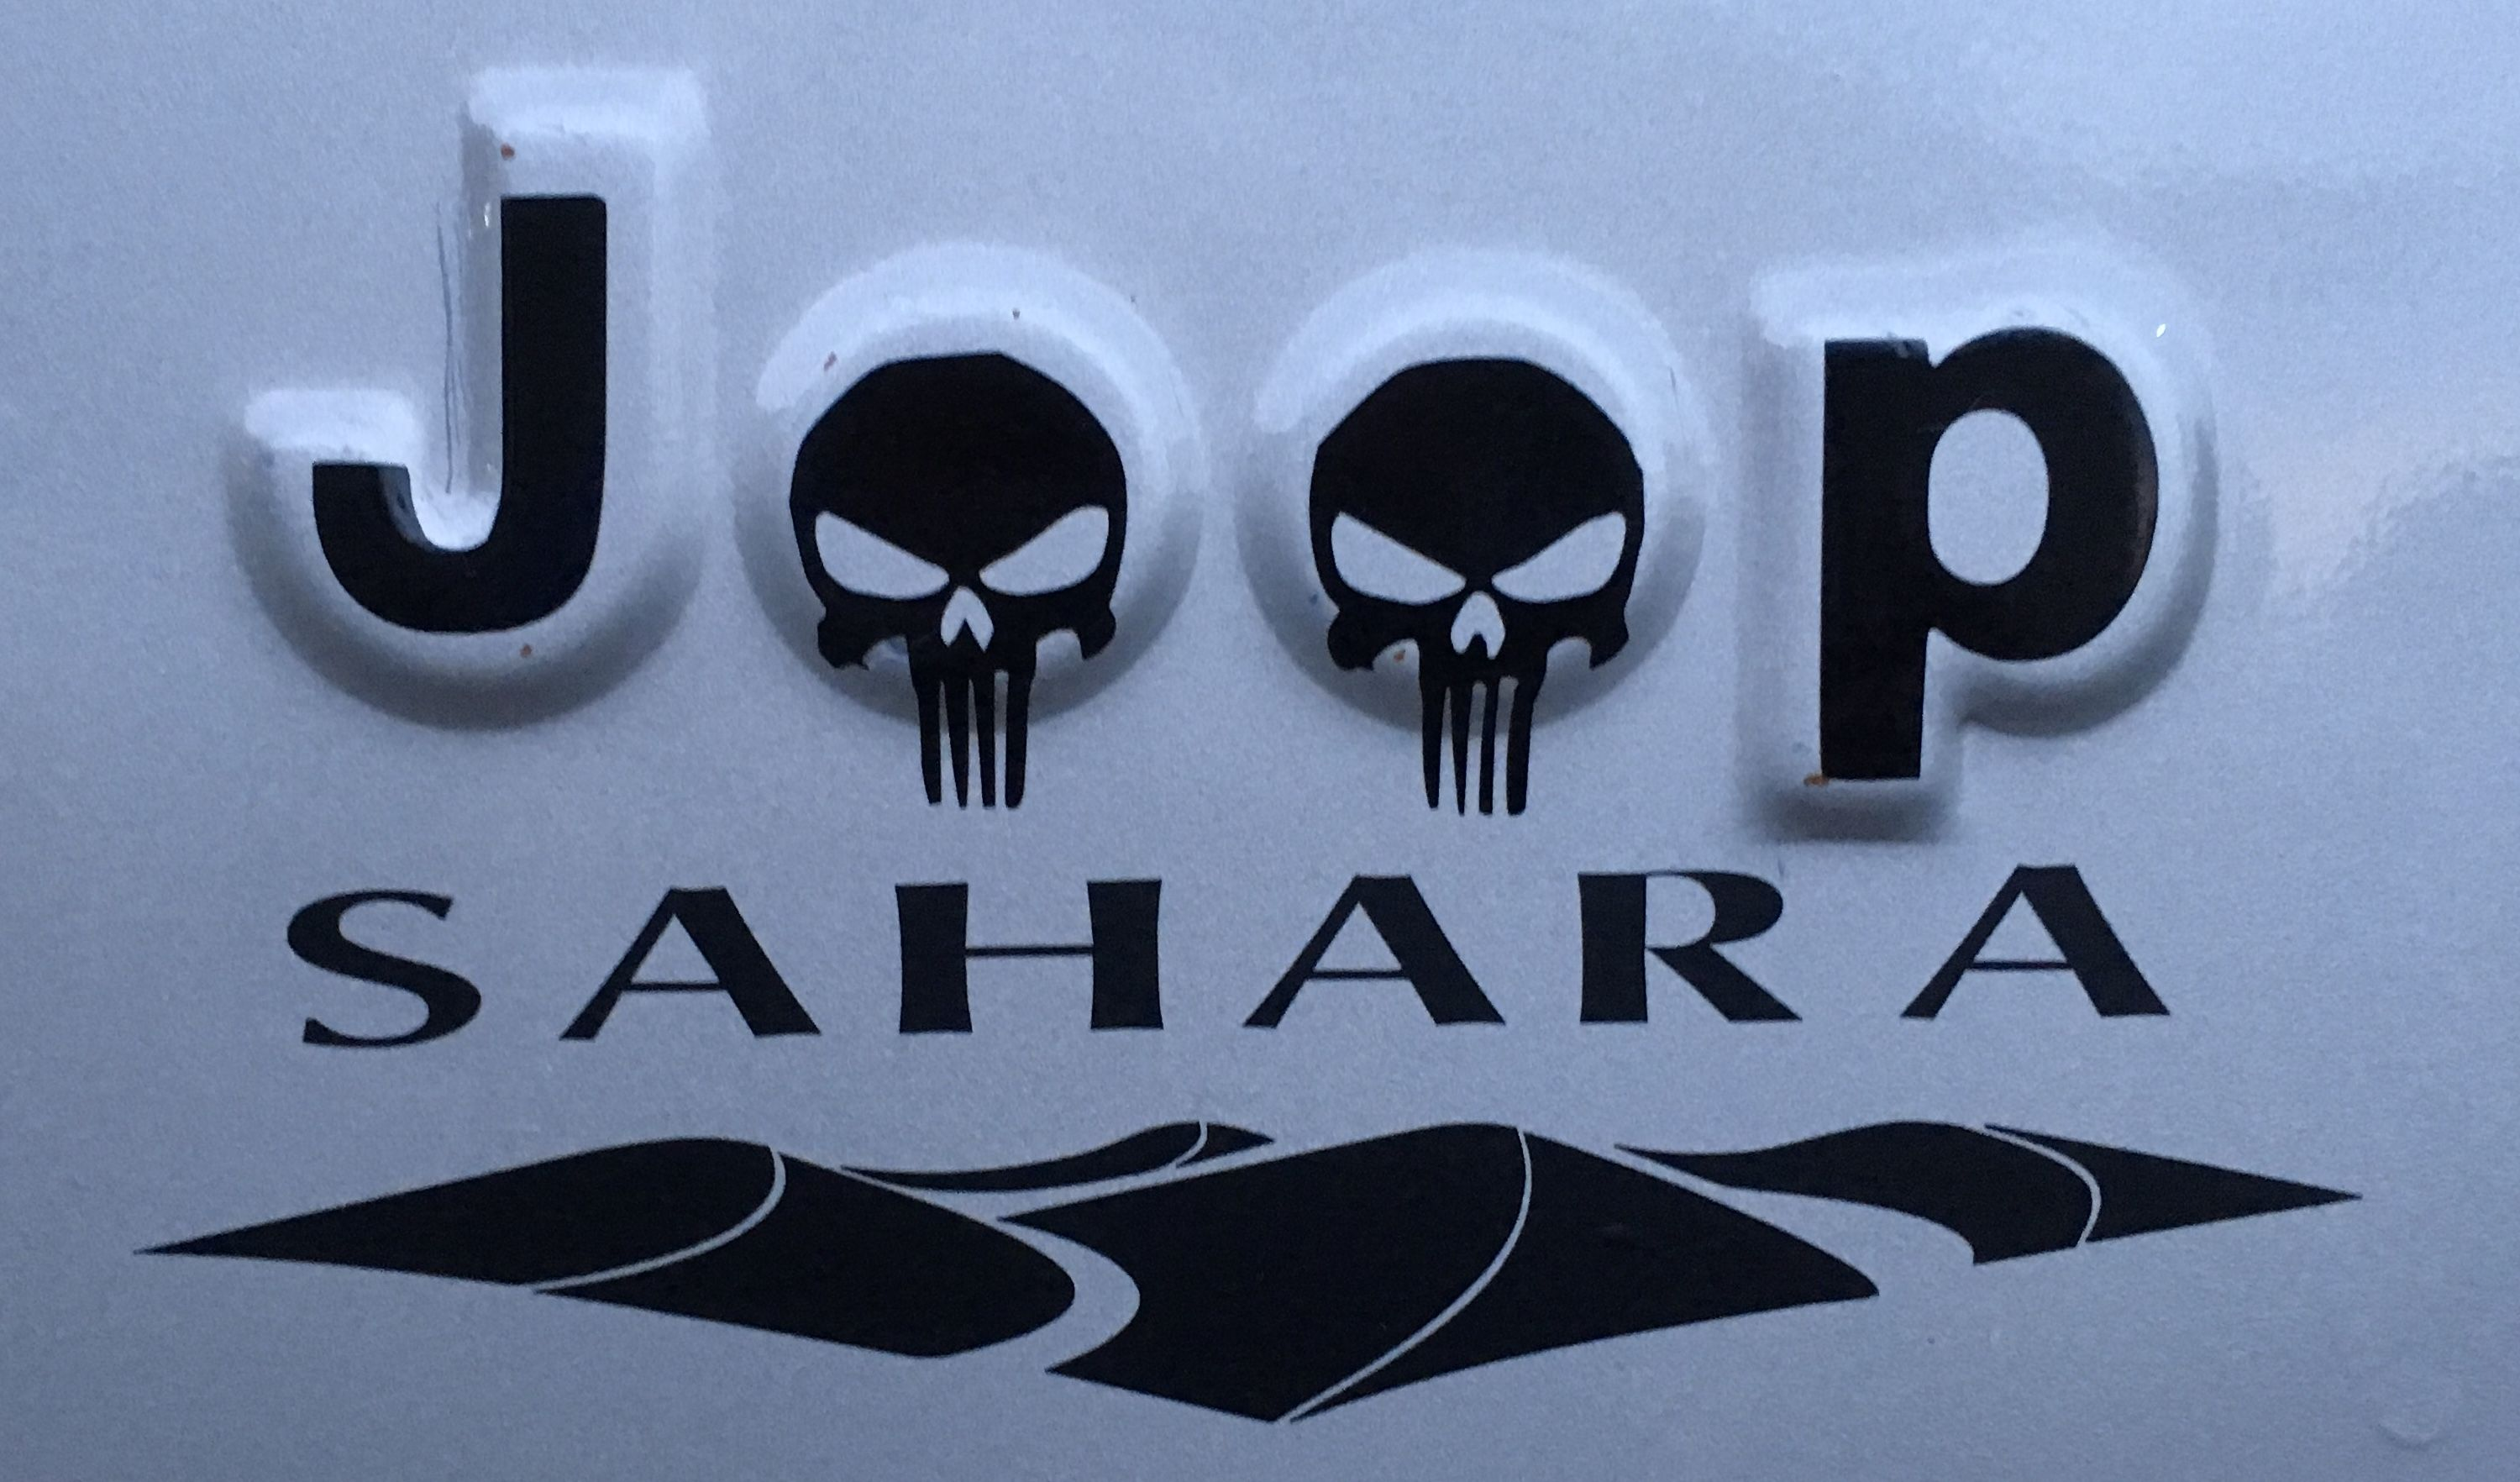 Punisher Skulls Jeep Lettering And Late Model Sahara Symbol Jeep Wrangler Sahara Wrangler Sahara Sahara